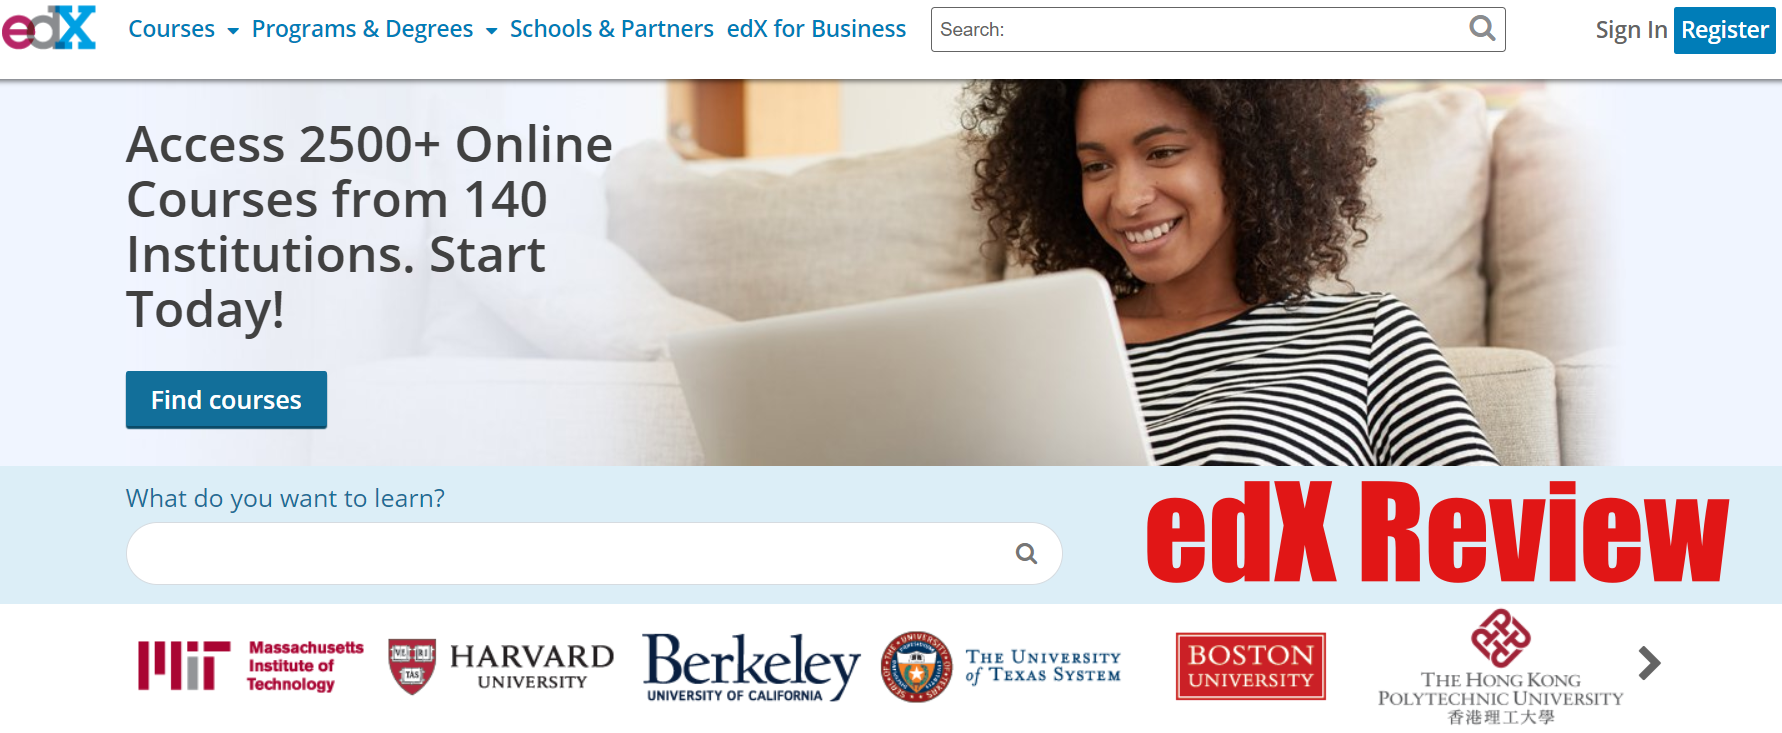 edx review - e-learning home study coming from MIT and Harvard